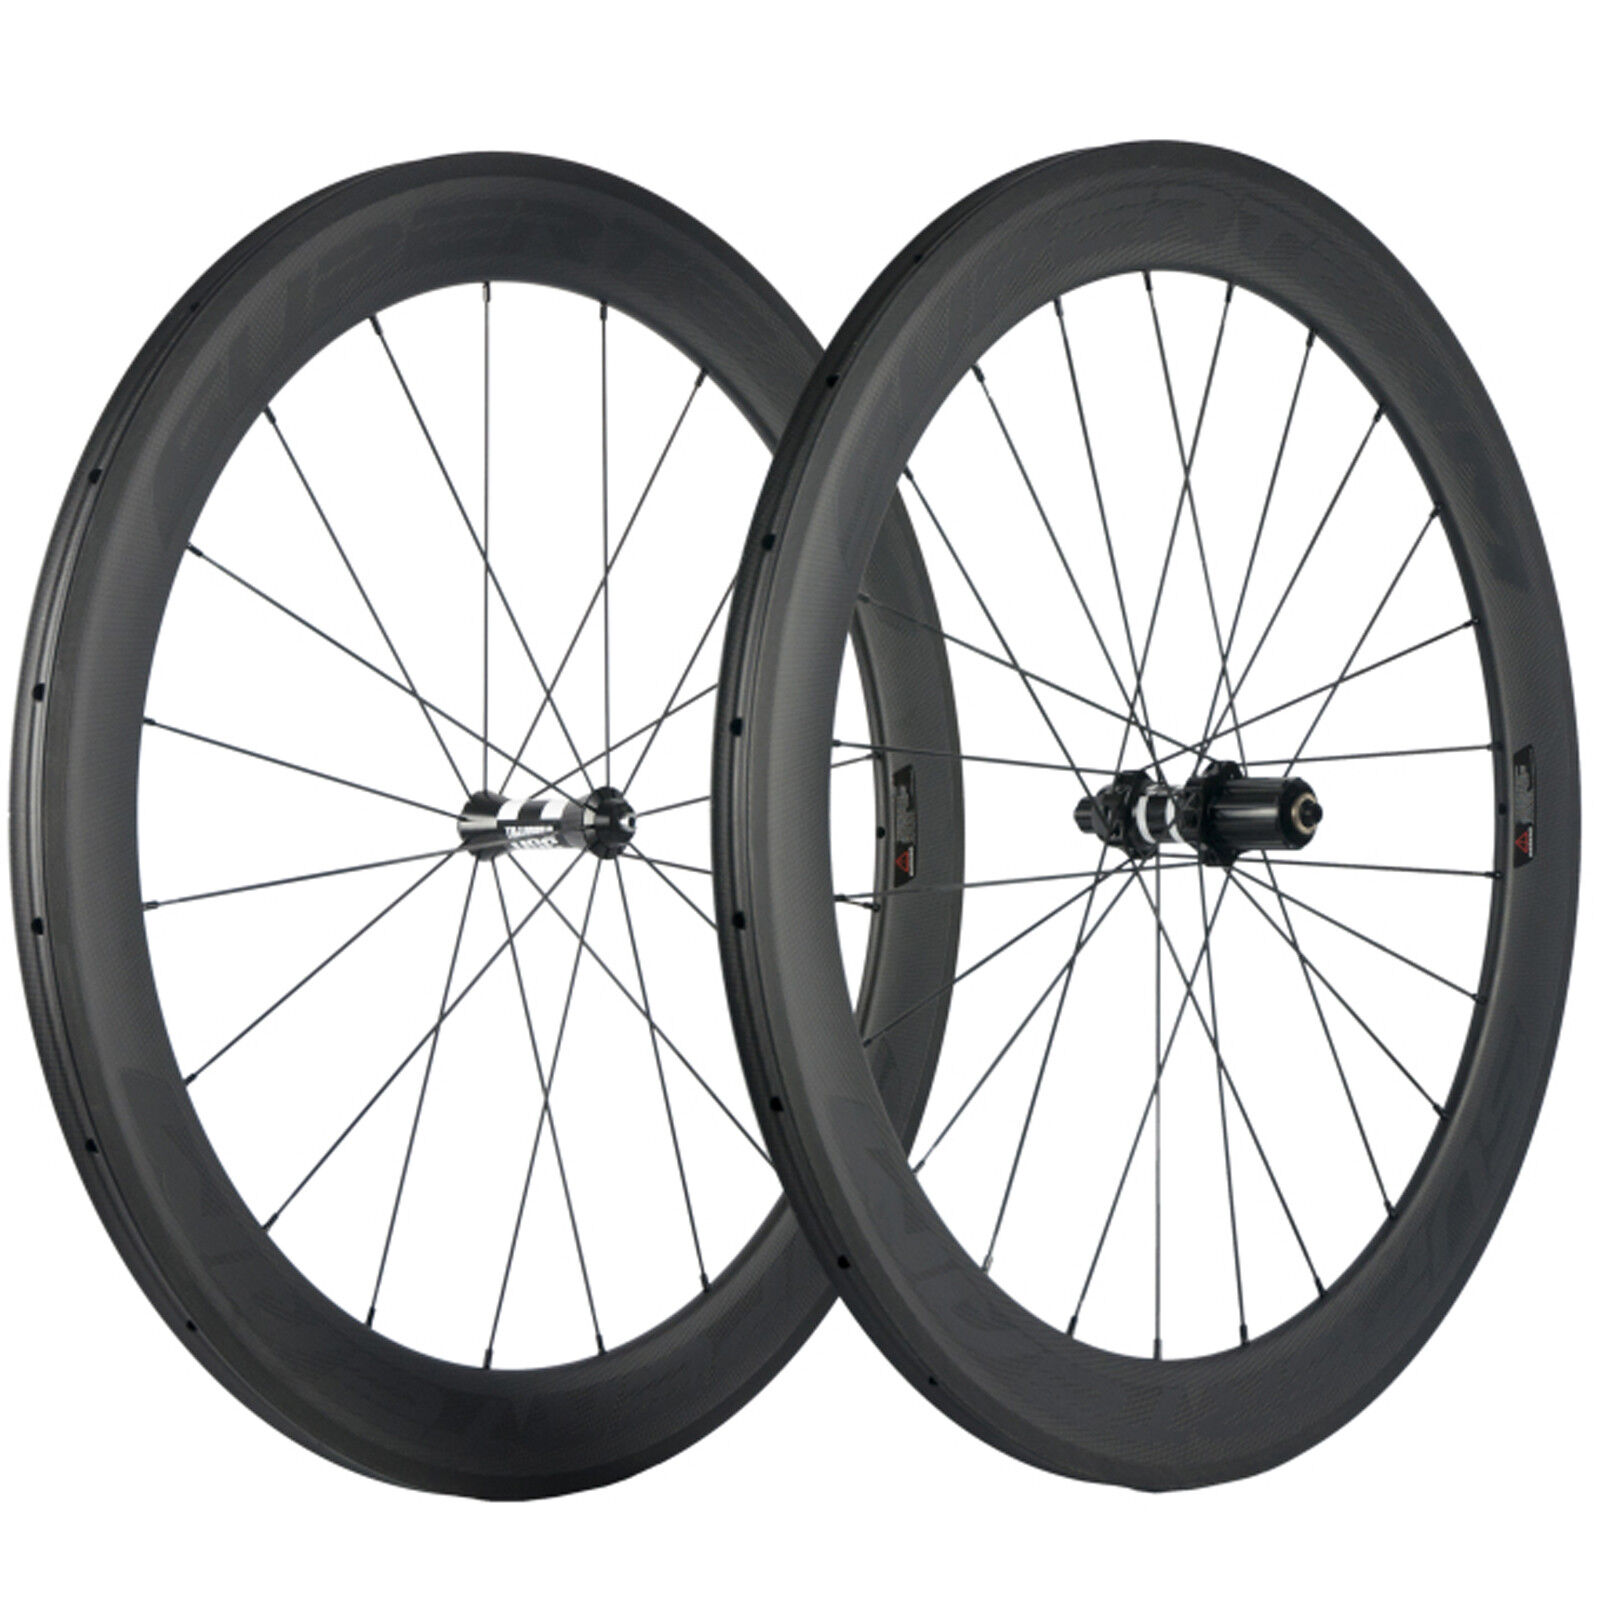 Superteam 60mm Depth Carbon Wheelset  Tubular Clincher DT350 Hub Road Bike Wheels  factory outlets